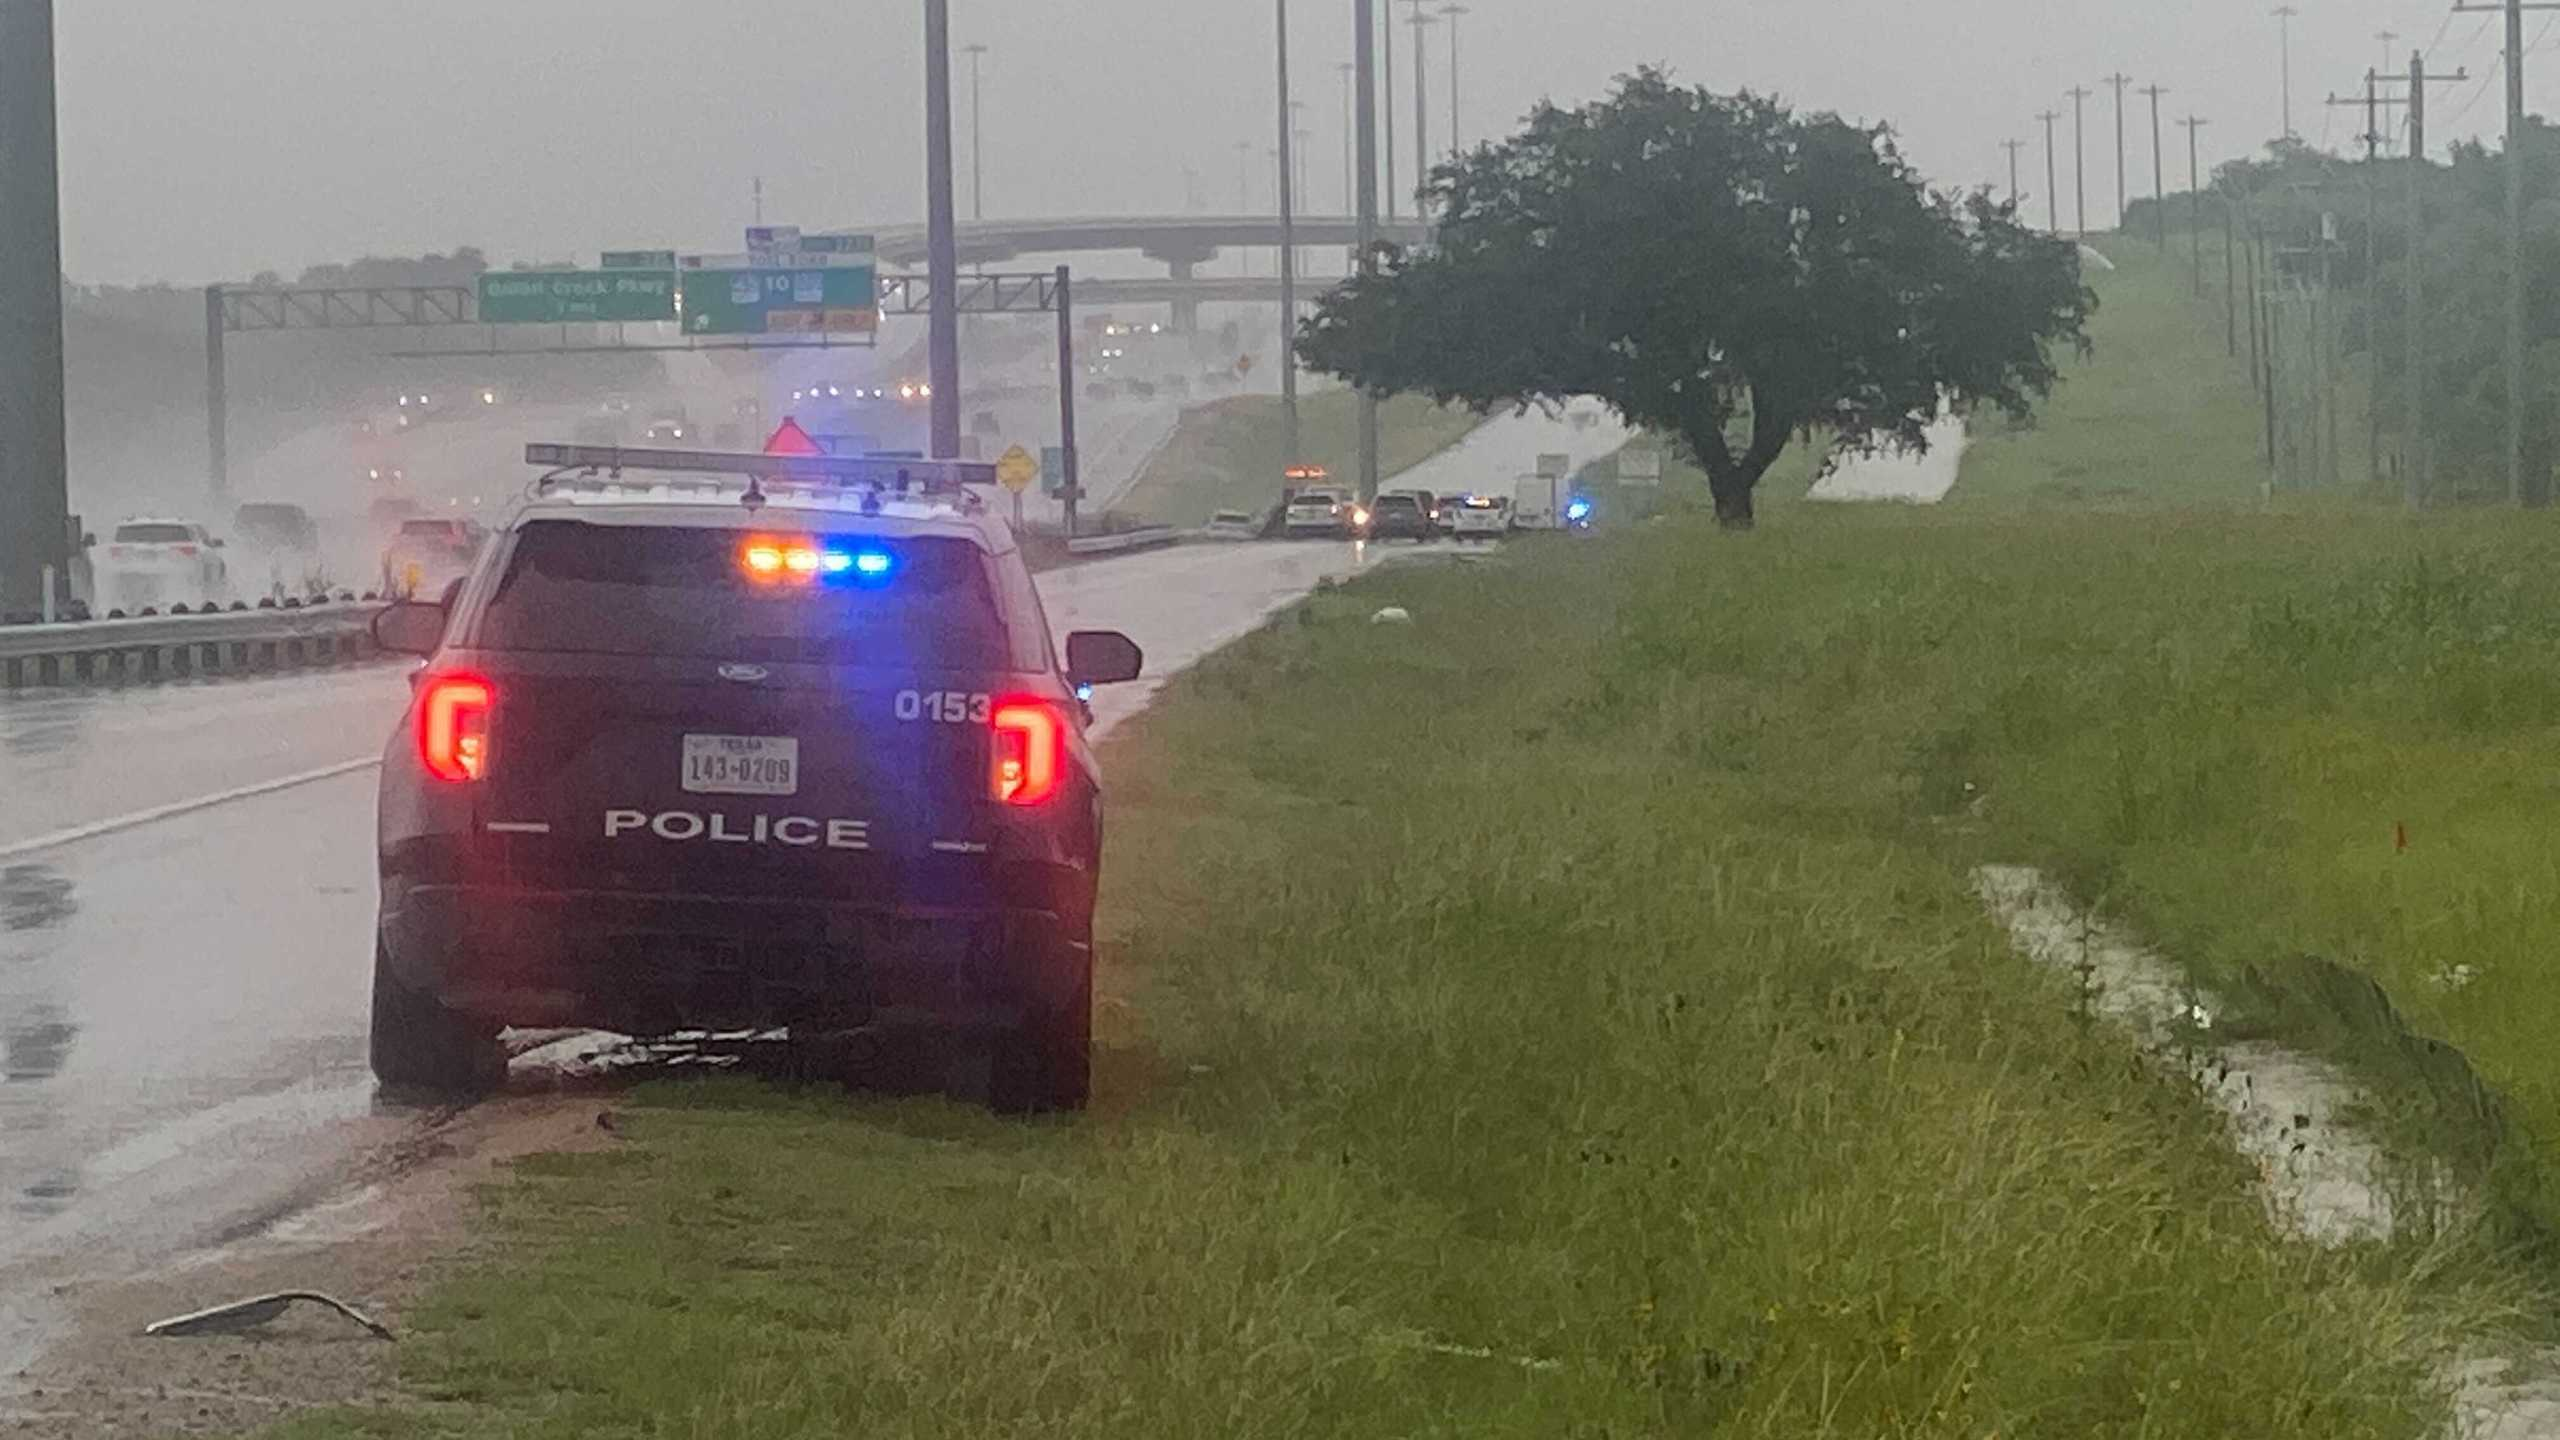 A person died after a car hit them on the I-35 frontage road Thursday morning in south Austin (KXAN Photo/Todd Bynum)